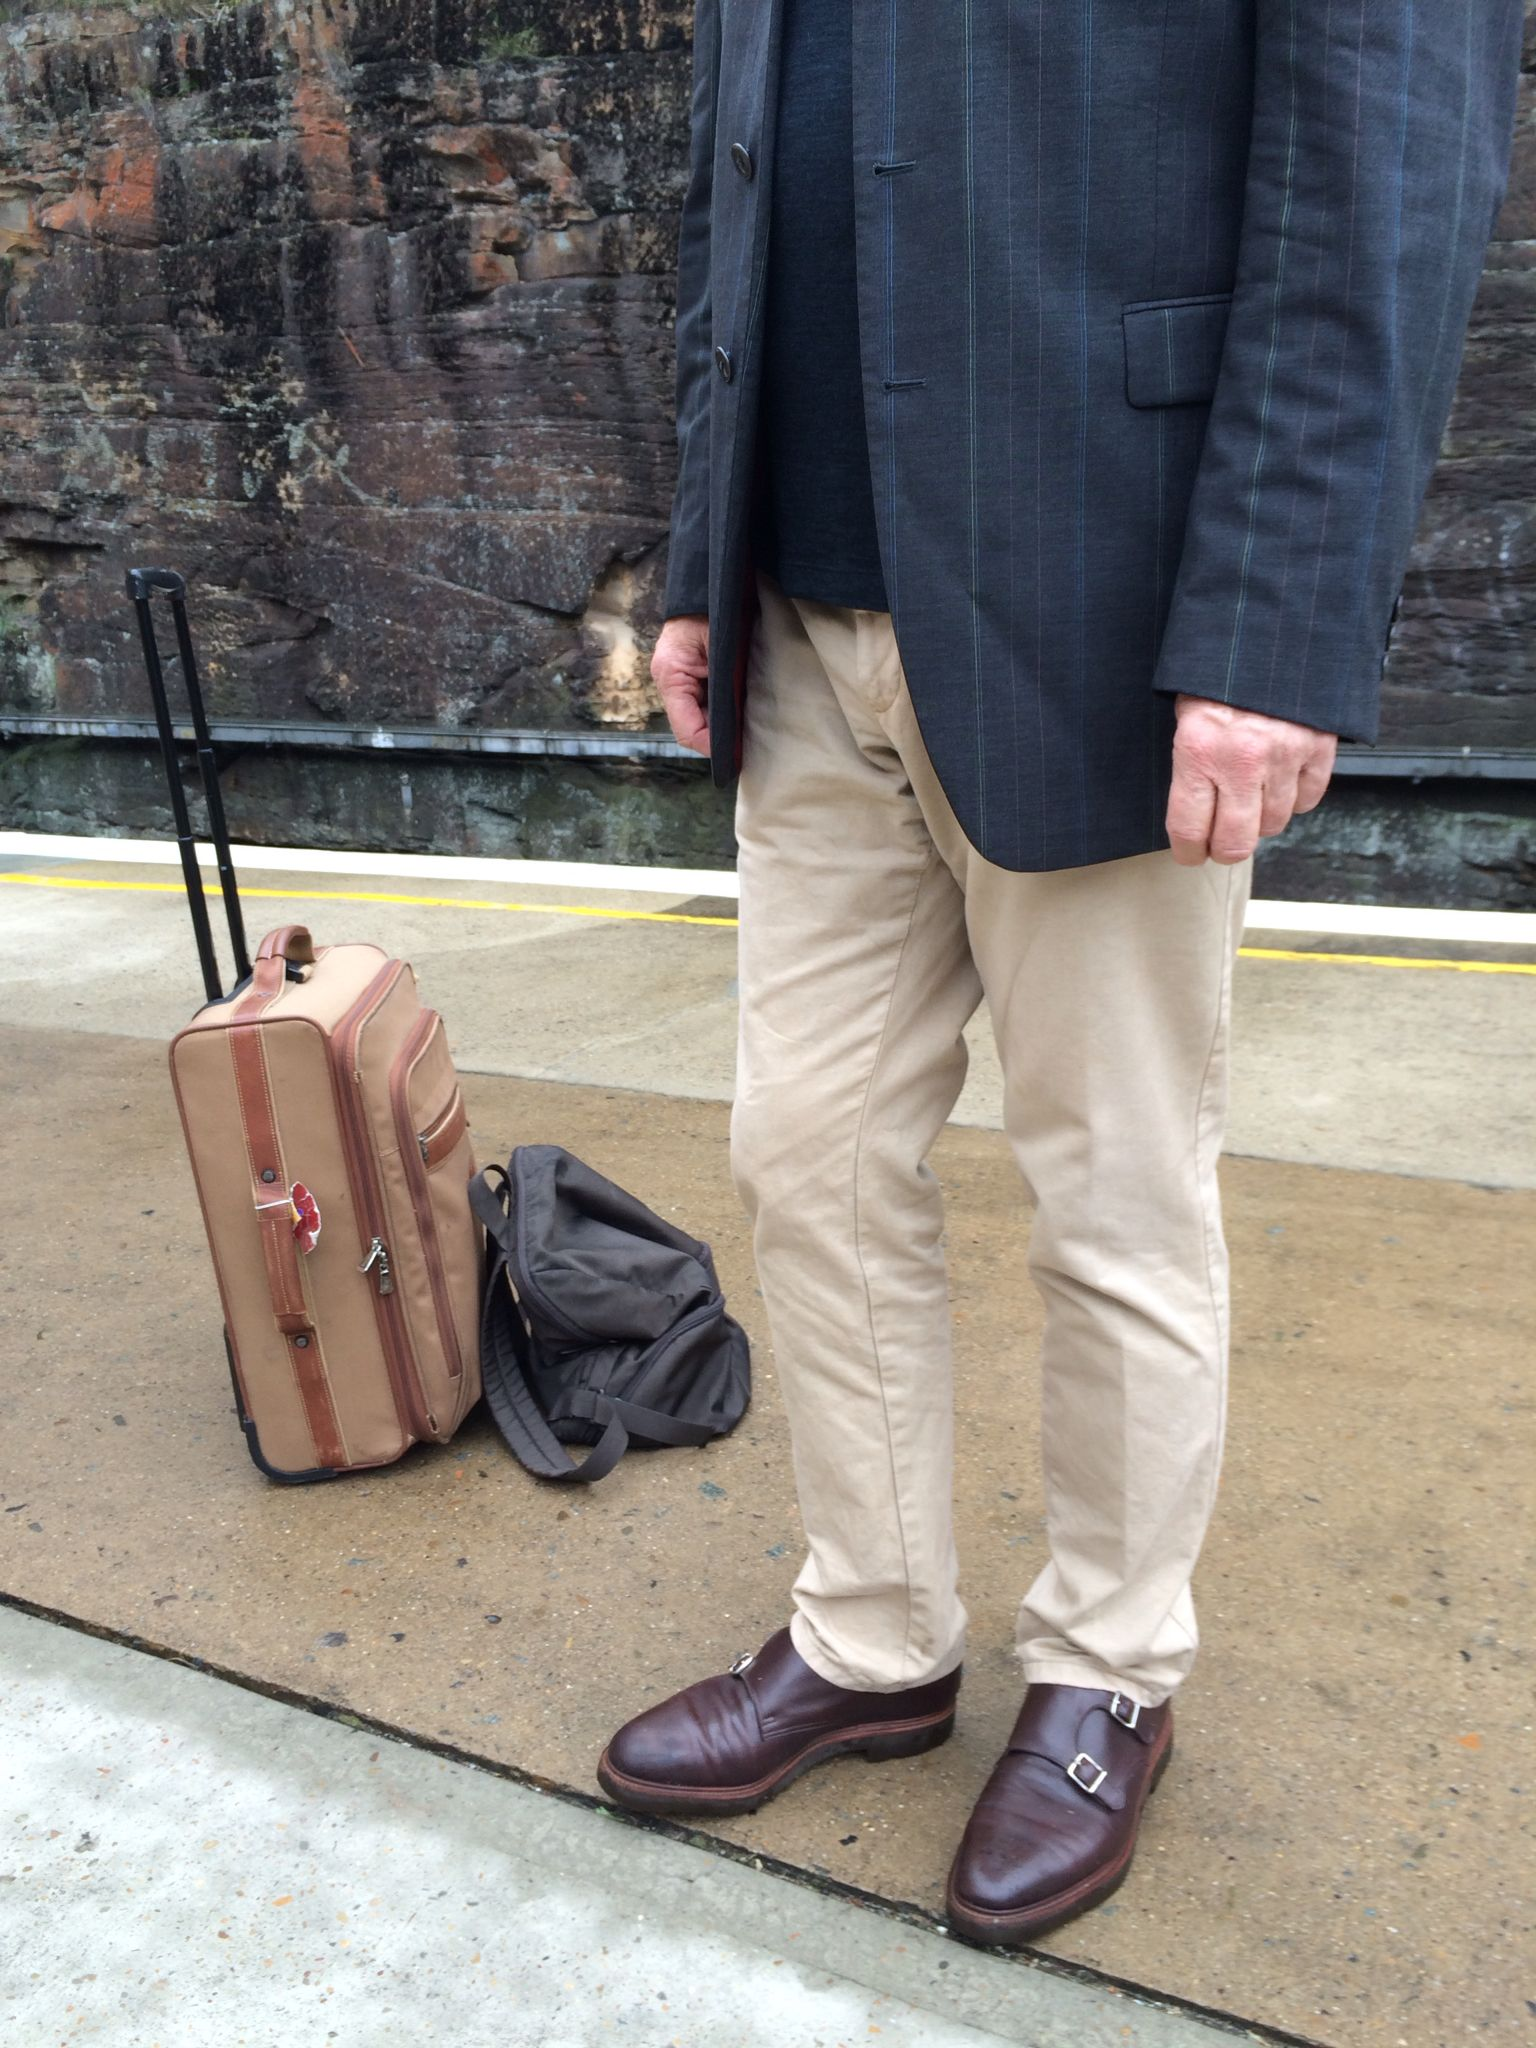 John Lobb William II, rare plain toe model. Kenzo Homme jacket, Gant  trousers. Long champ travel bag and Mandarina Duck back pack. 5236b63674a